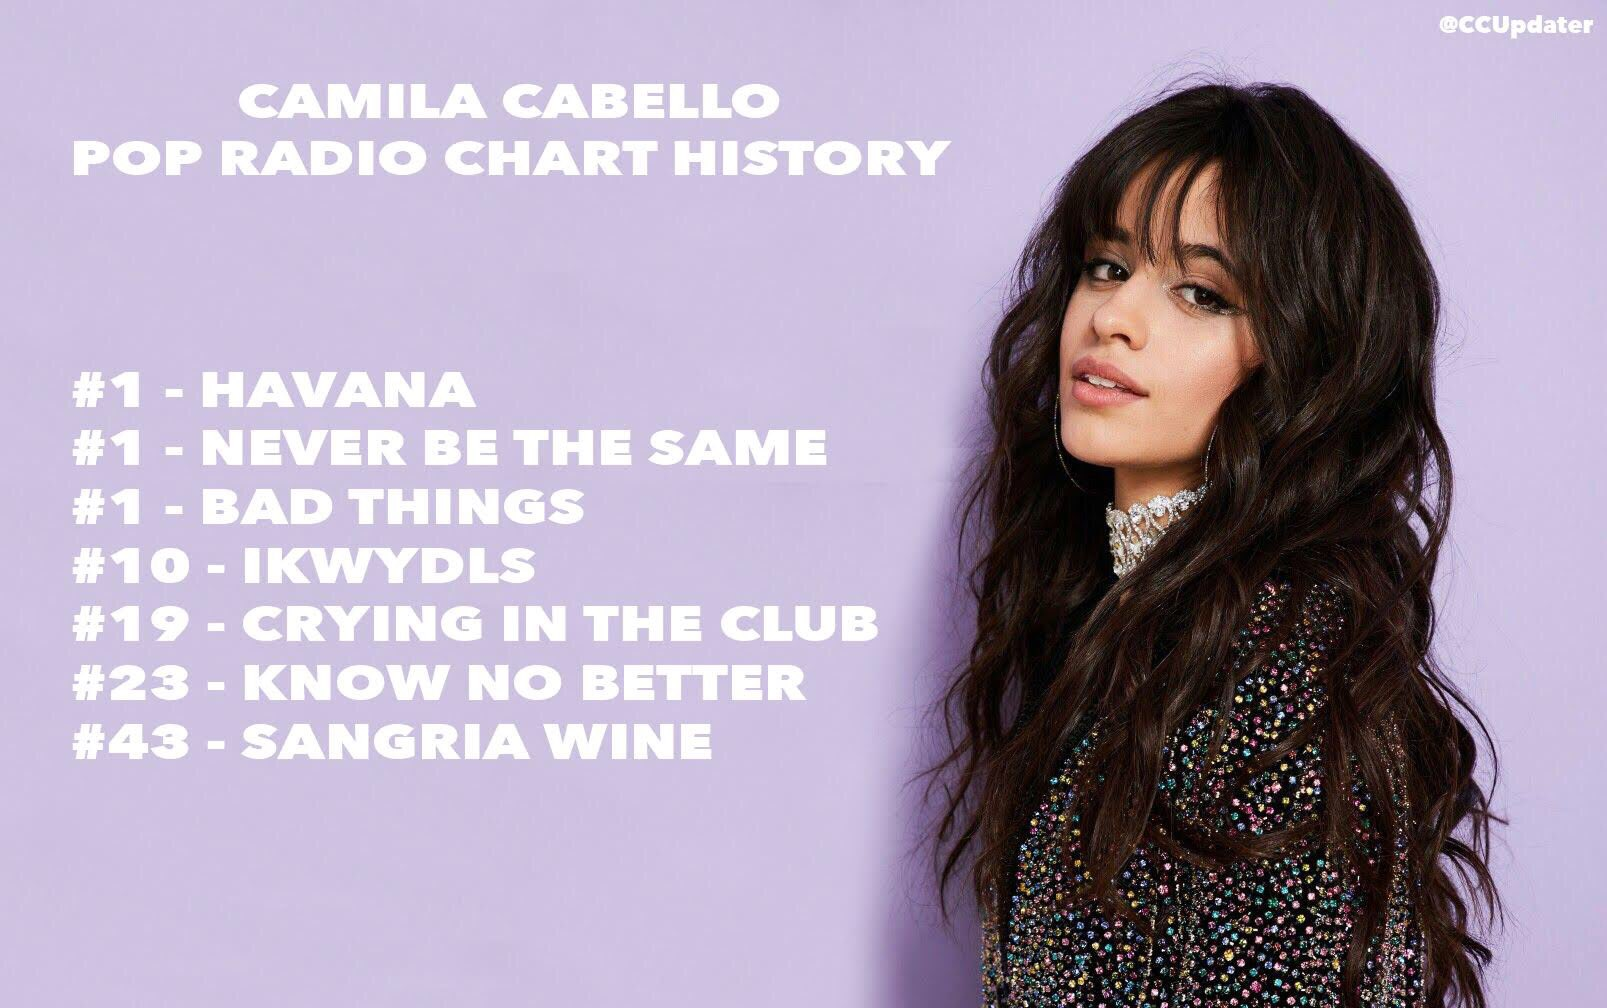 Camila Pop Radio Chart History https://t.co/n07OIw6QuF